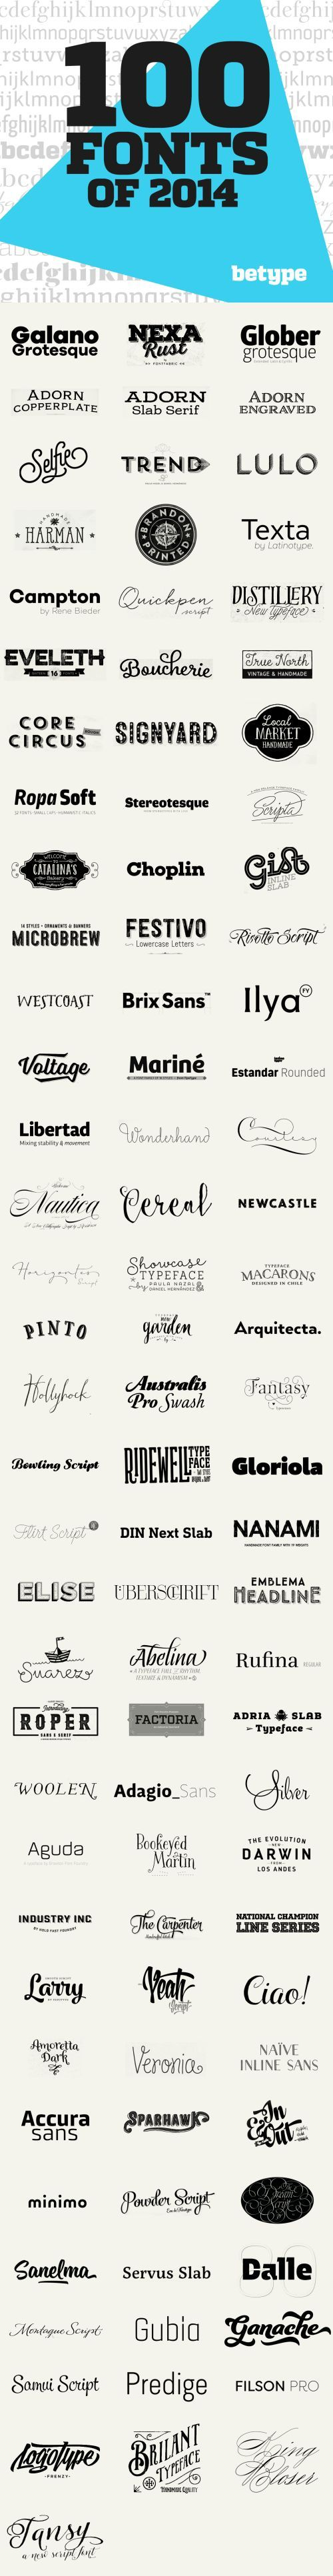 100 Best Fonts of 2014. Links at the bottom of the website www.lab333.com www.facebook.com/pages/LAB-STYLE/585086788169863 www.lab333style.com lablikes.tumblr.com www.pinterest.com/labstyle: